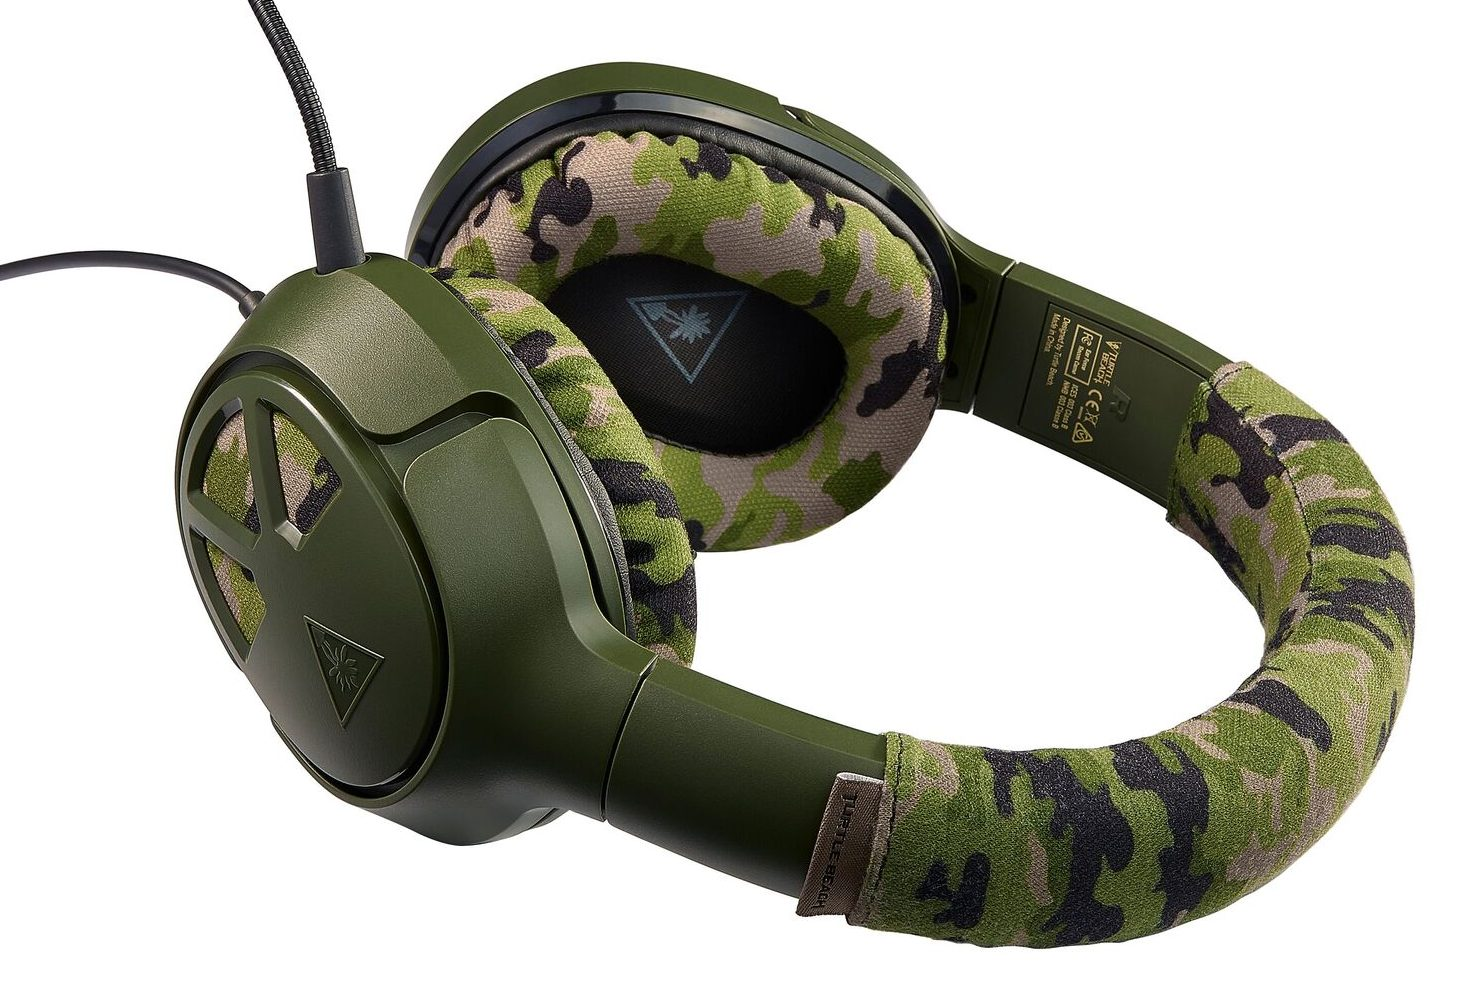 Need A New Gaming Headset For Call of Duty WW2?